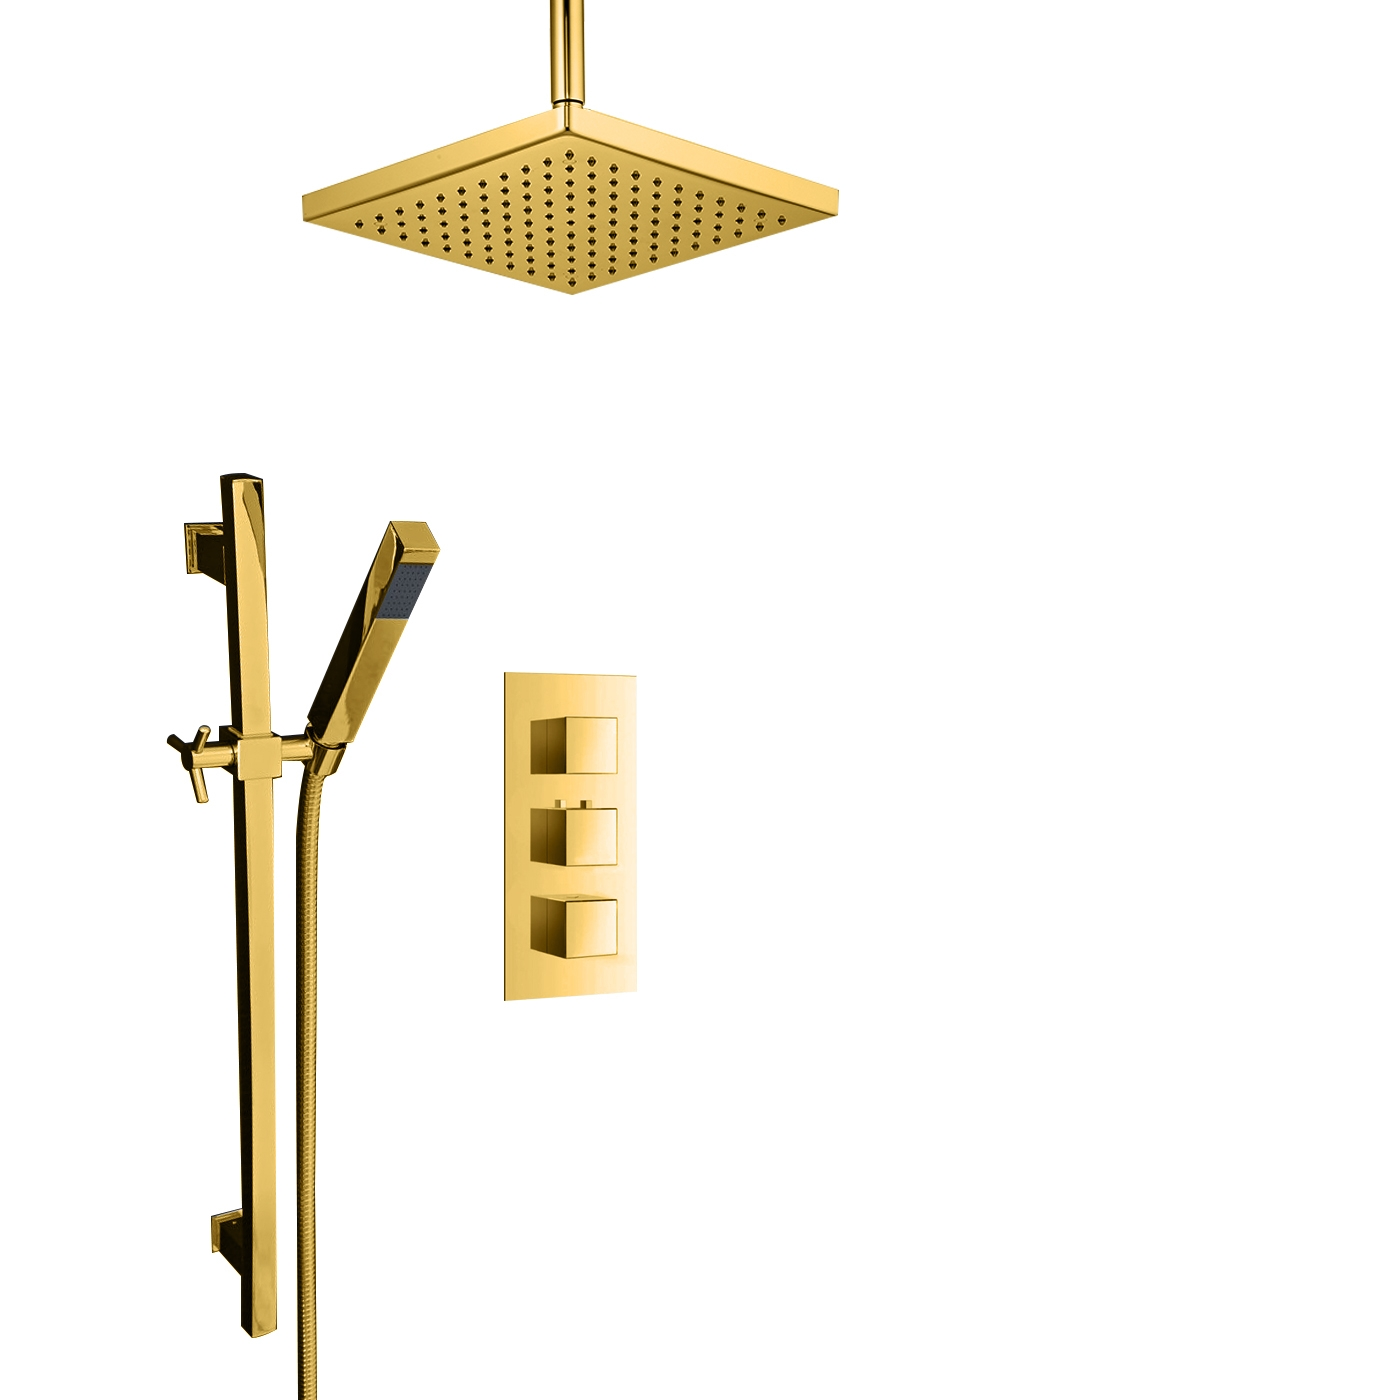 Juno Gold Plated Ceiling Mount Square Shower Head Set